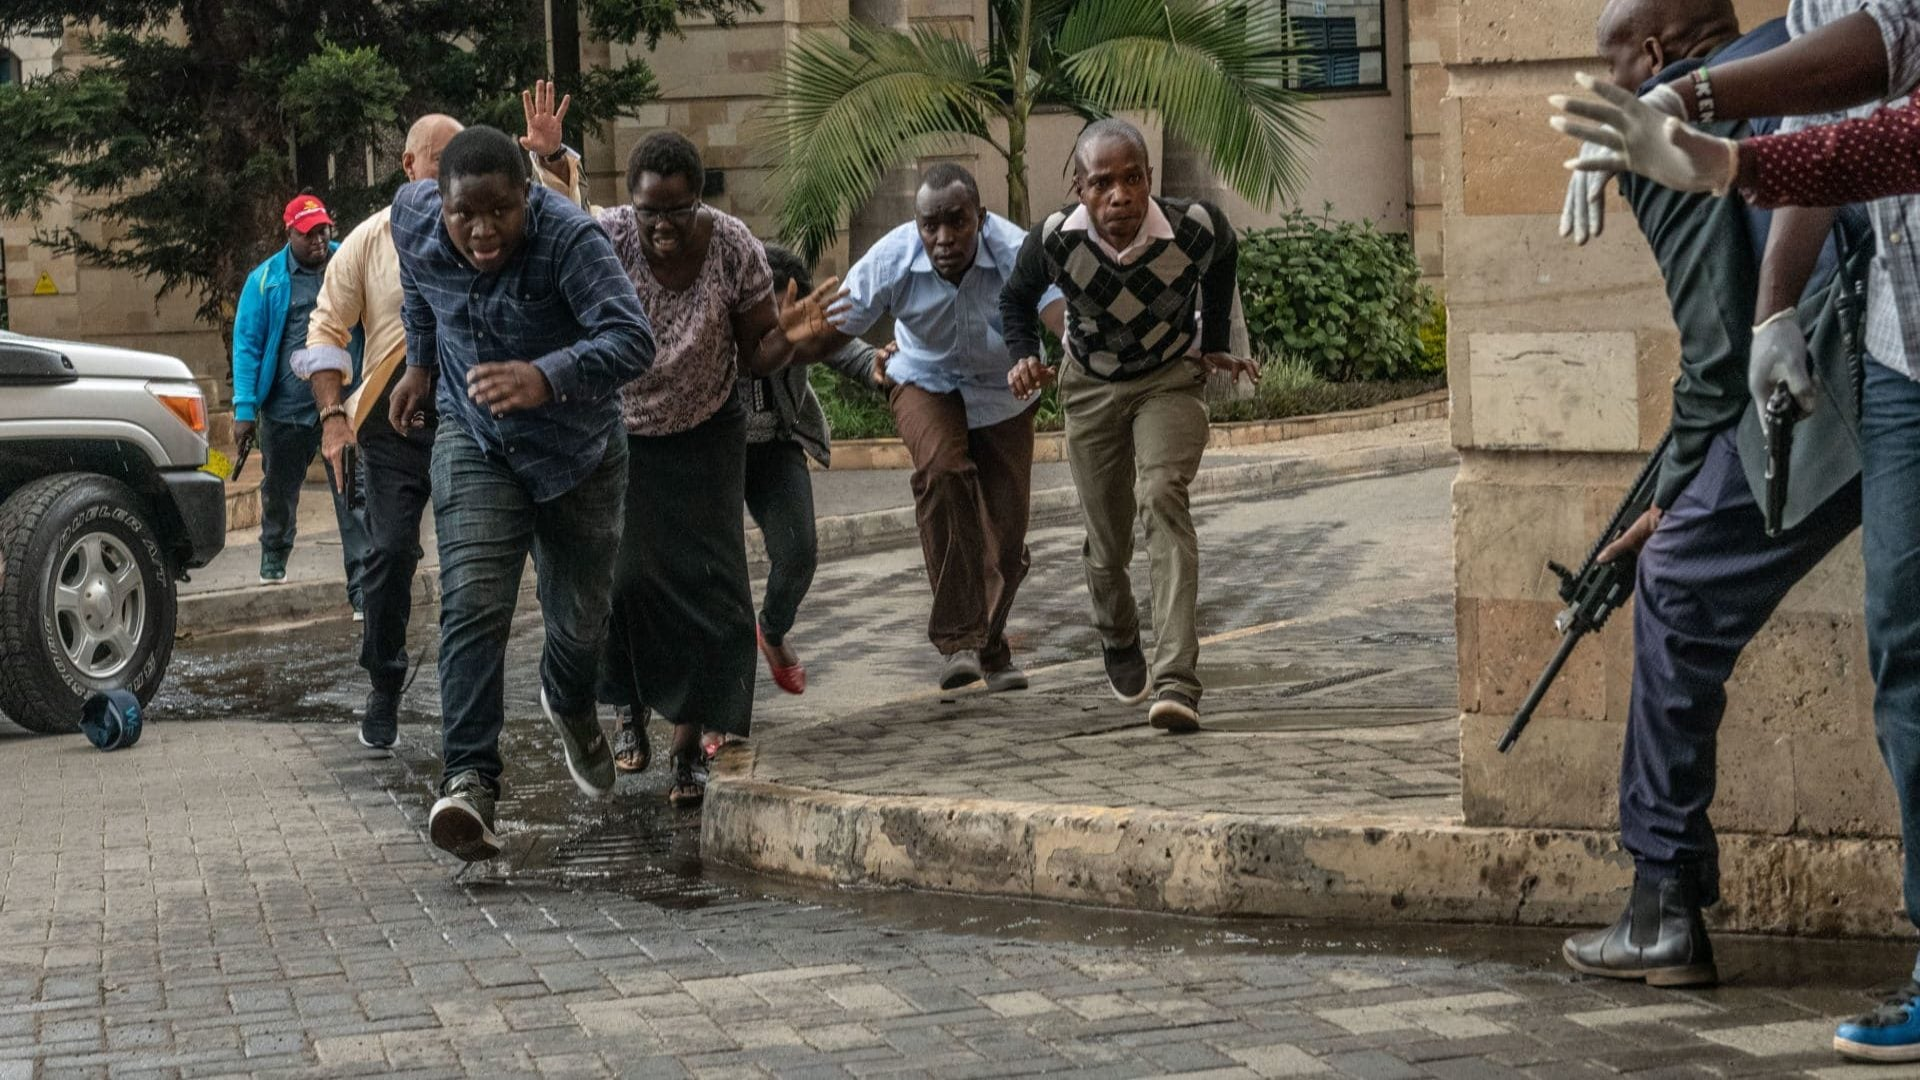 'Suspected Terror Attack' Leaves At Least 4 Dead At Nairobi, Kenya Hotel Complex